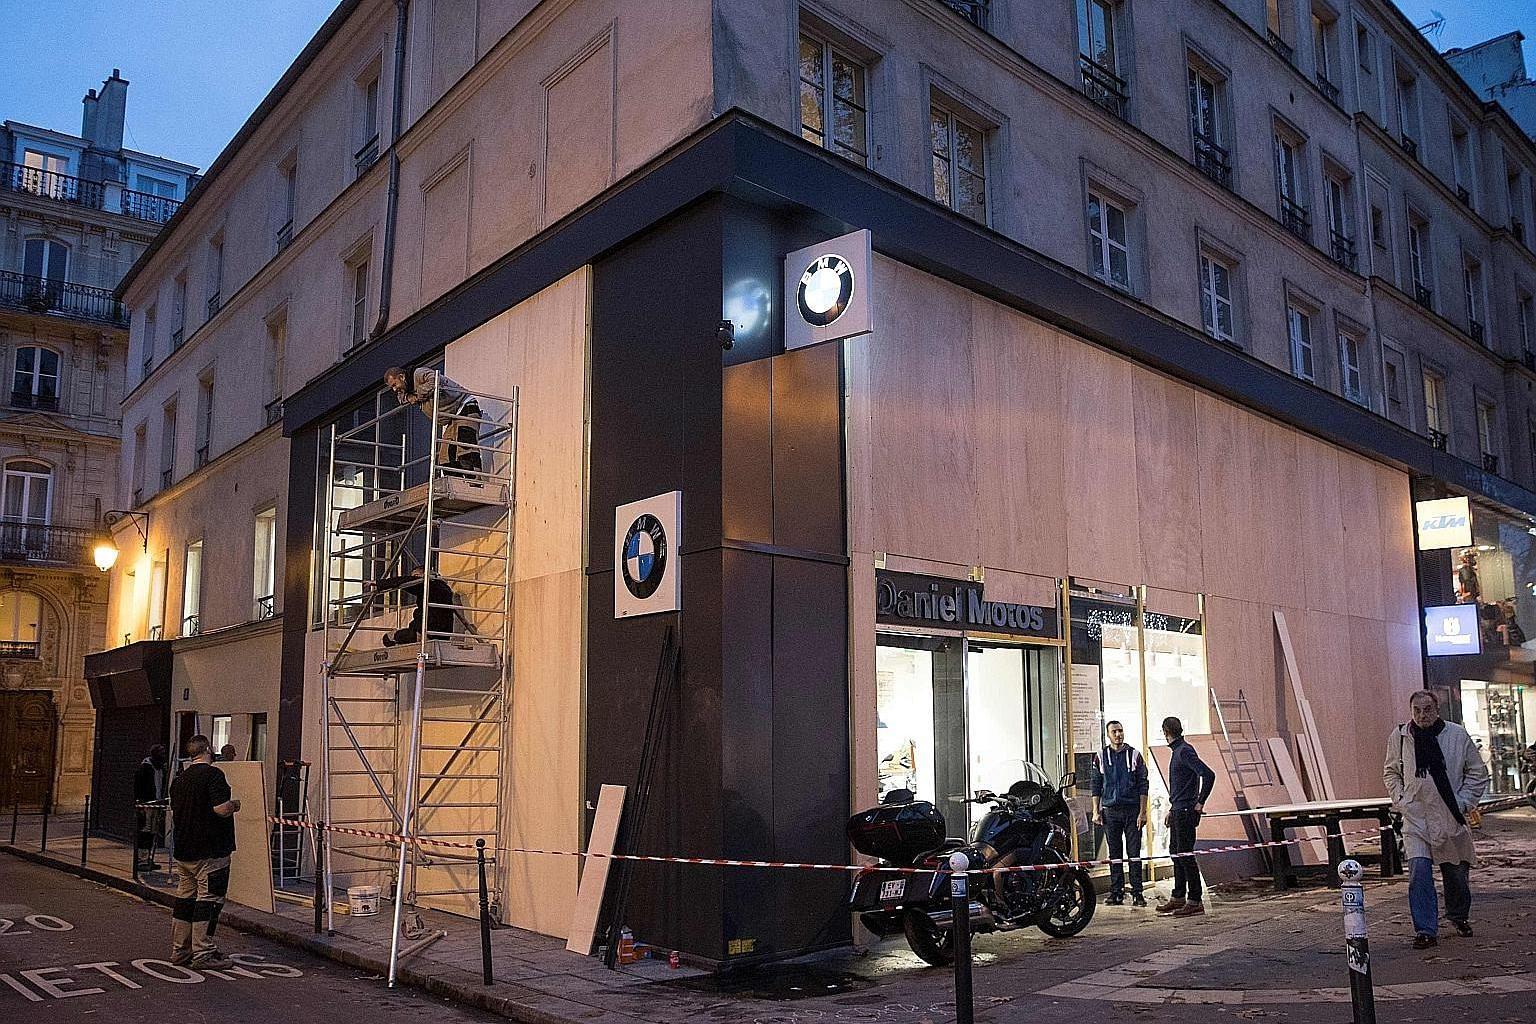 """Workers setting up wood panels to protect shop windows near Bastille Place in Paris yesterday. The authorities there have ordered today's closure to stave off another wave of violent """"yellow vest"""" protests over living costs."""